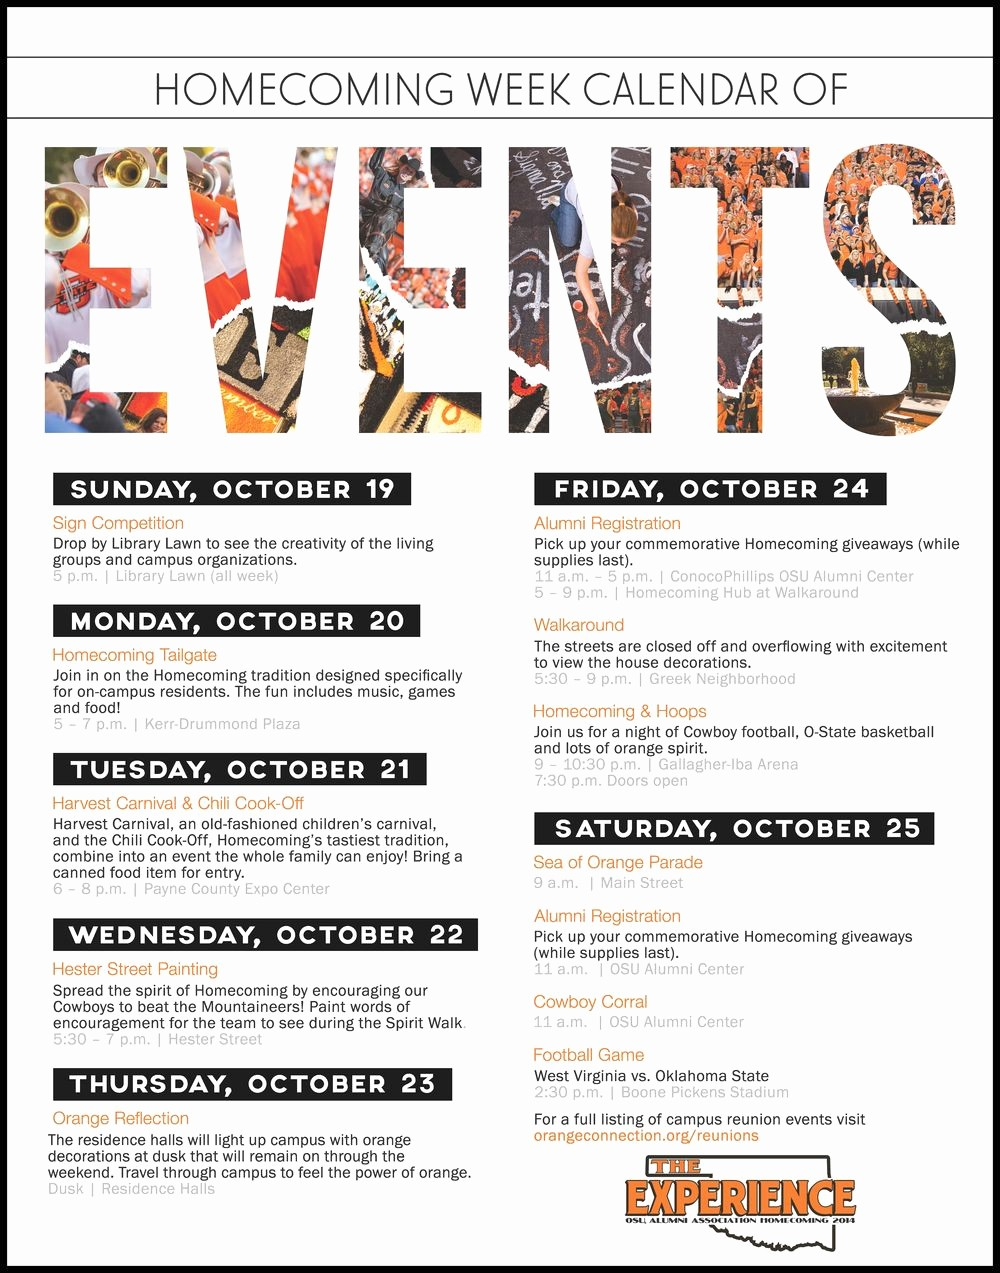 Schedule Of events Template Word Lovely Schedule Of events Flyer Google Search